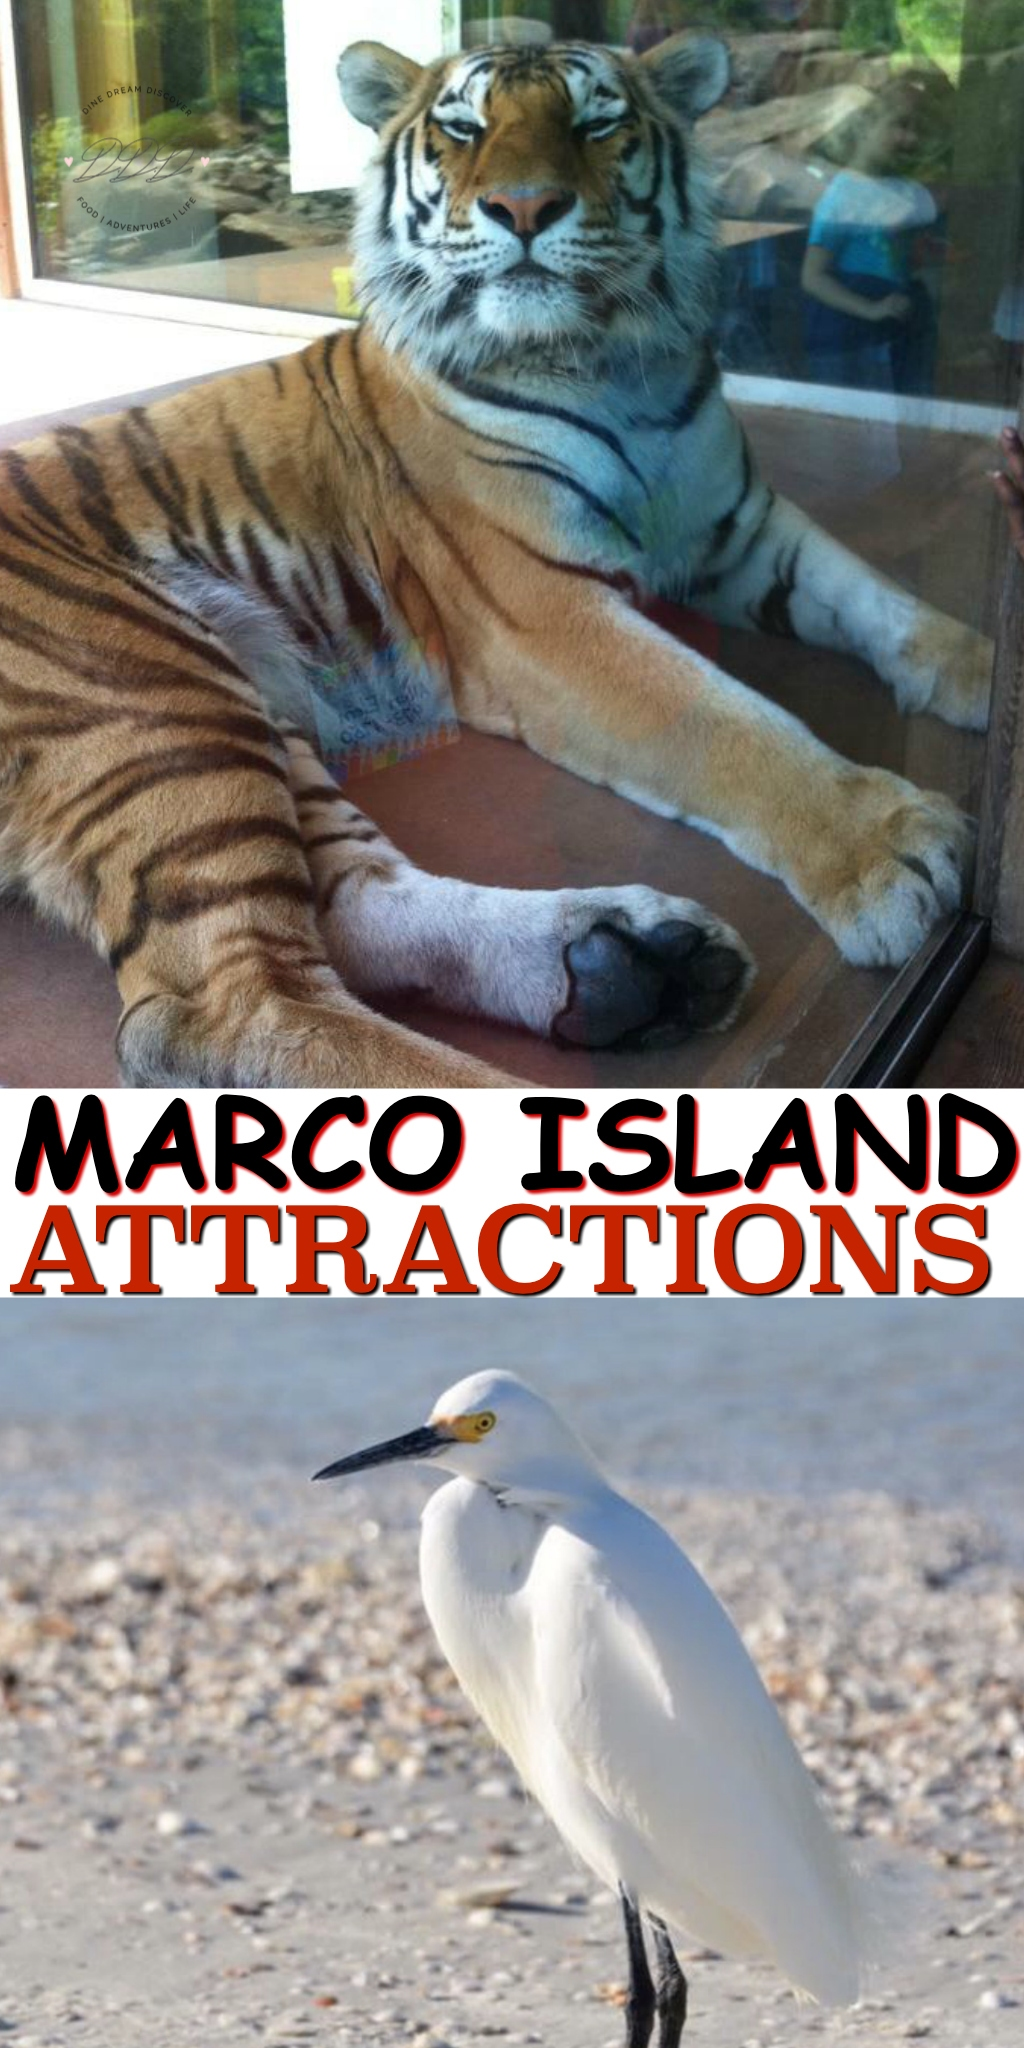 You've already decided that your next vacation will be on Marco Island. Now what do you need to see or do once you get there and where do you stay?